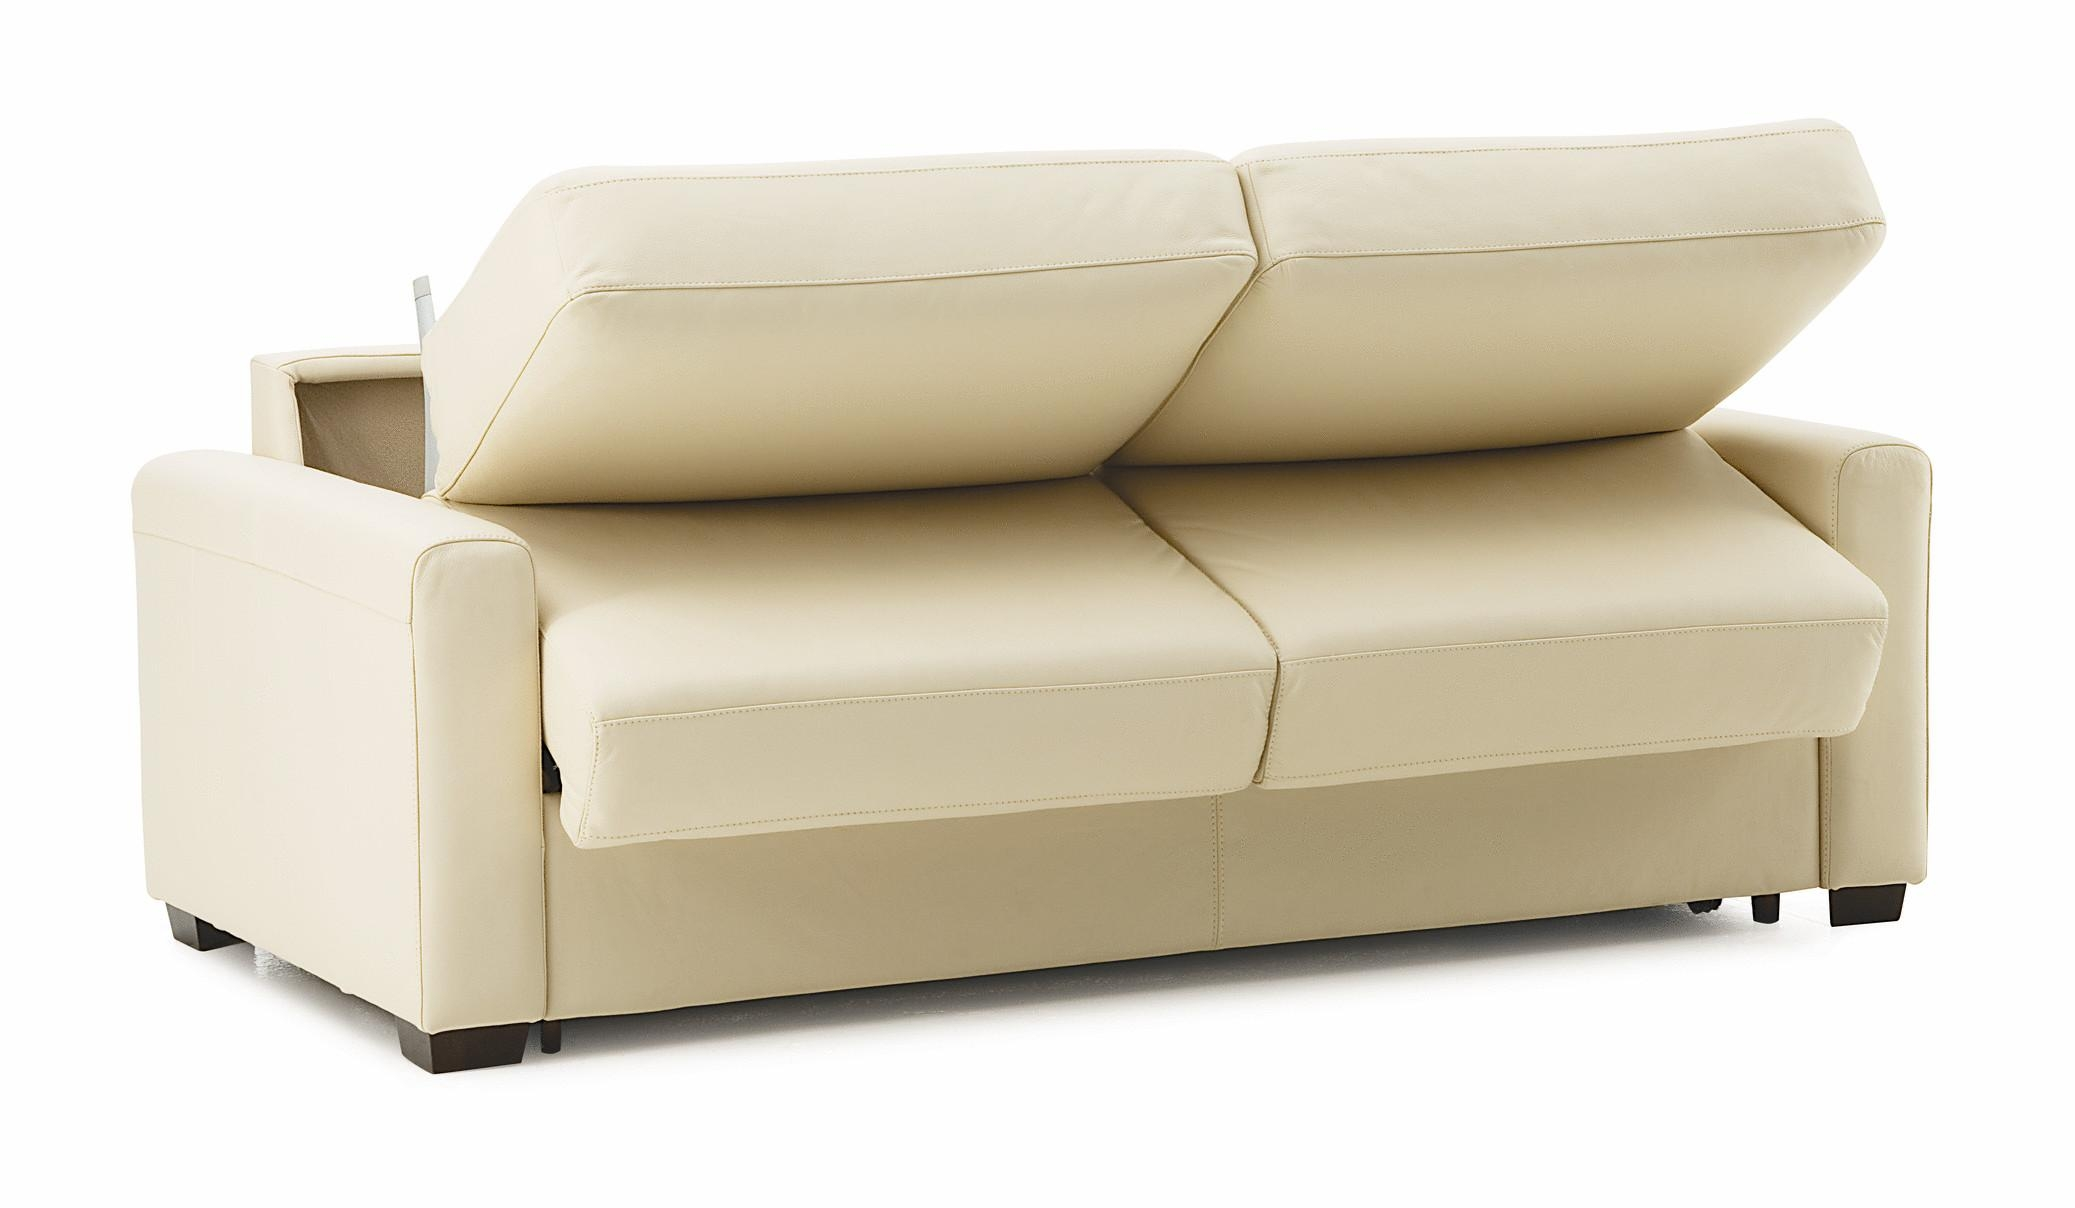 Comfortable Sofa Sleeper And Comfortable Sofa Bed › Most Intended For Sofa Bed Sleepers (View 6 of 20)